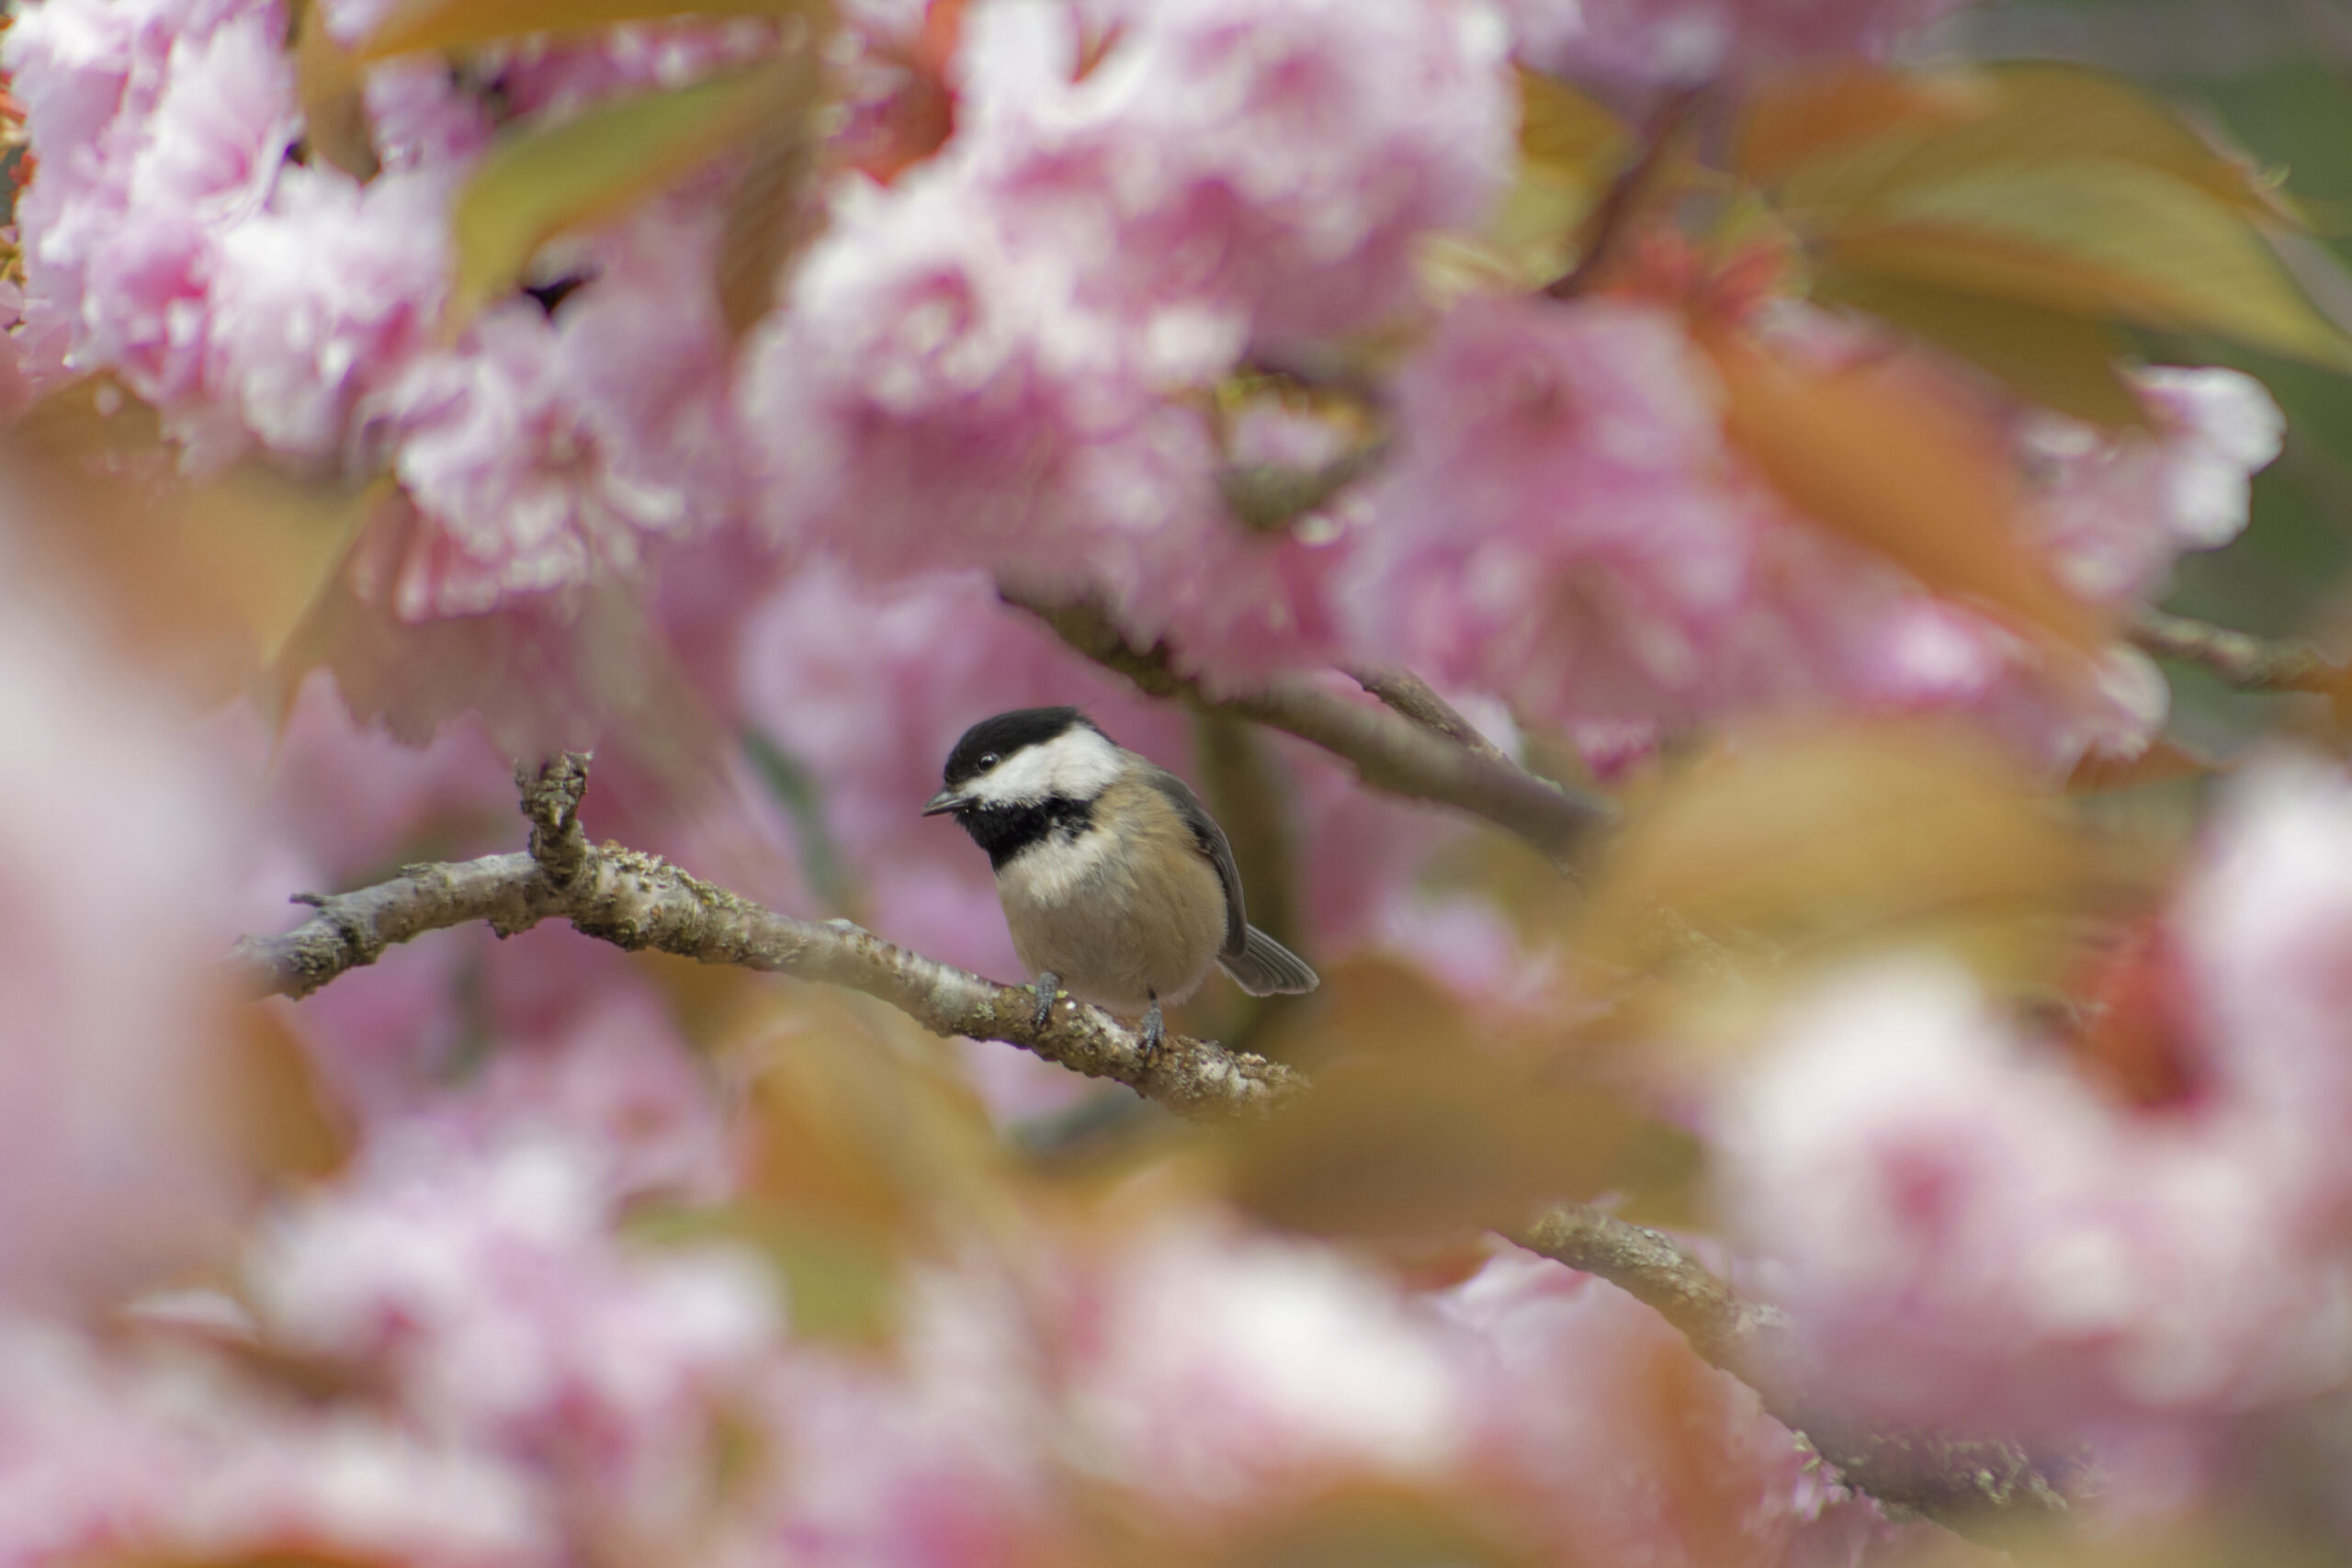 Black Capped Chickadee in Blossoms, April 25, 2021